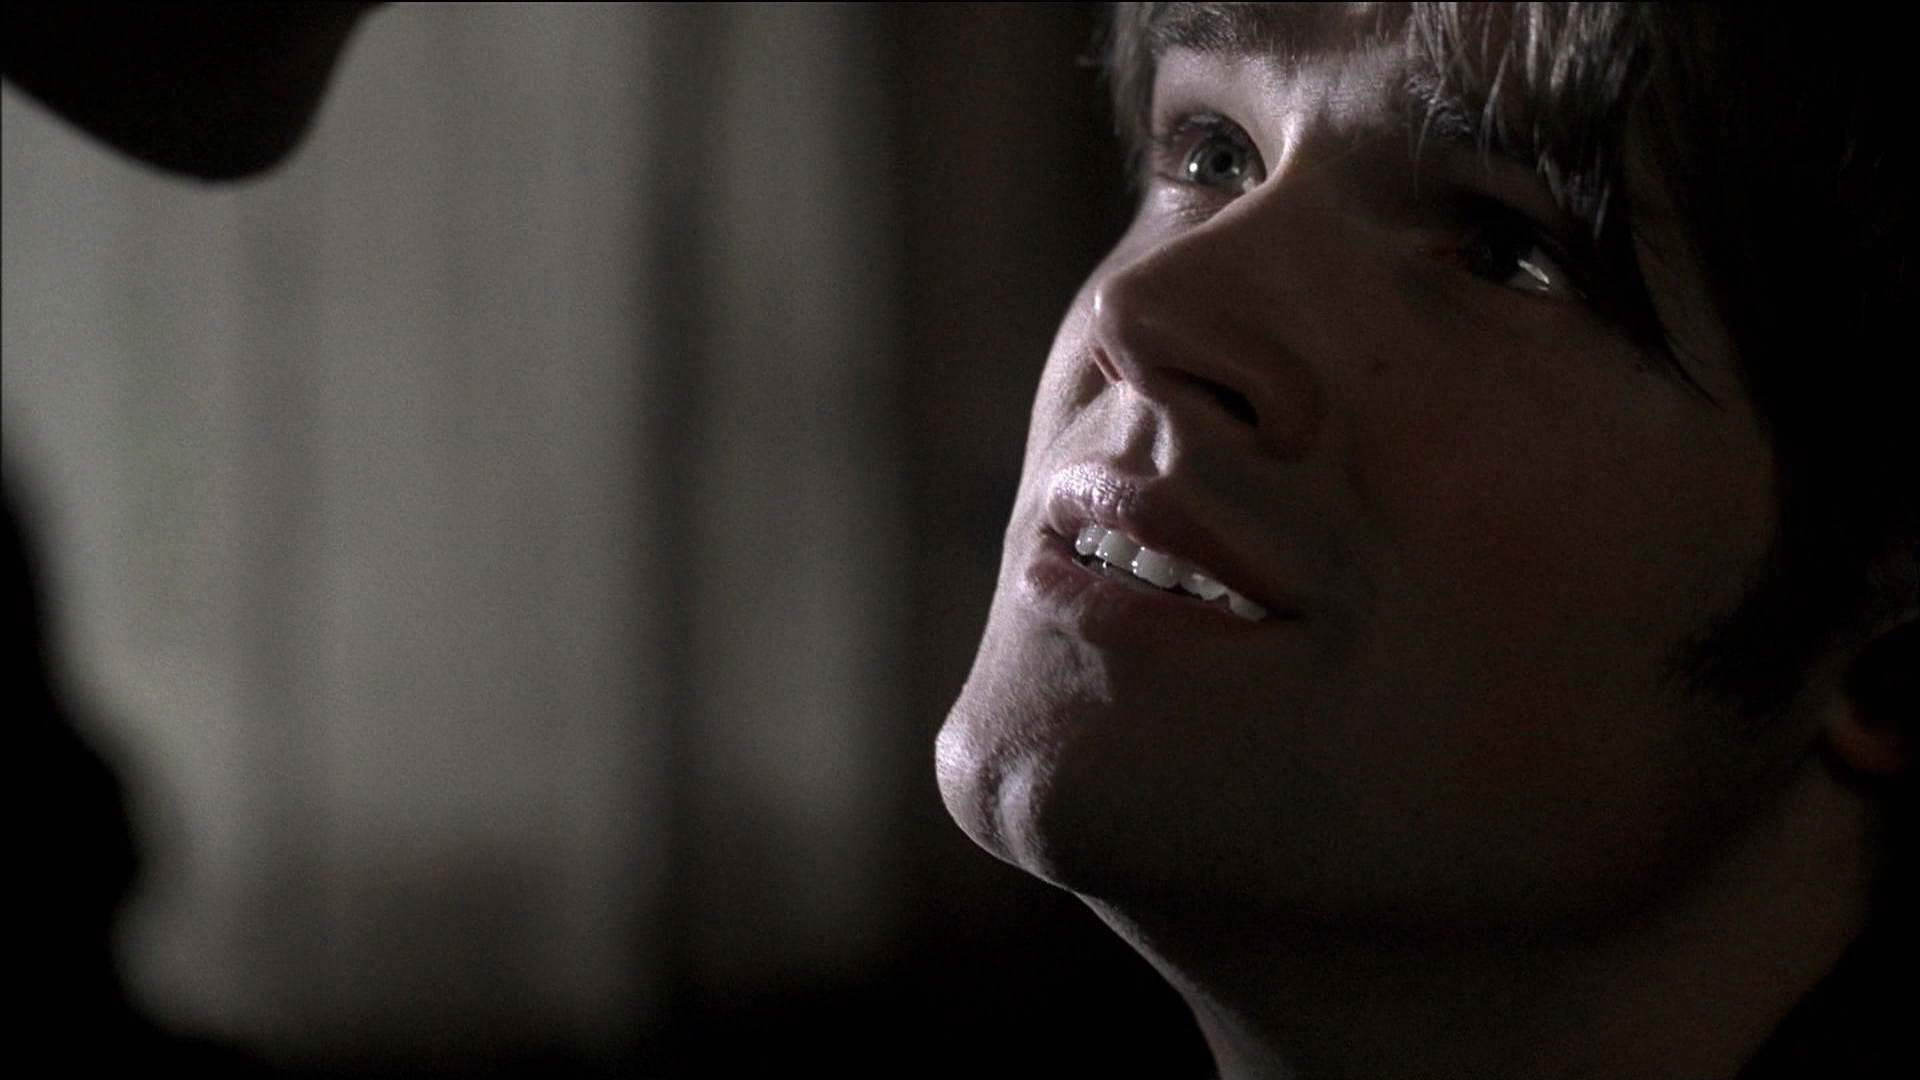 http://images1.fanpop.com/images/photos/2300000/Playthings-sam-winchester-2323390-1920-1080.jpg